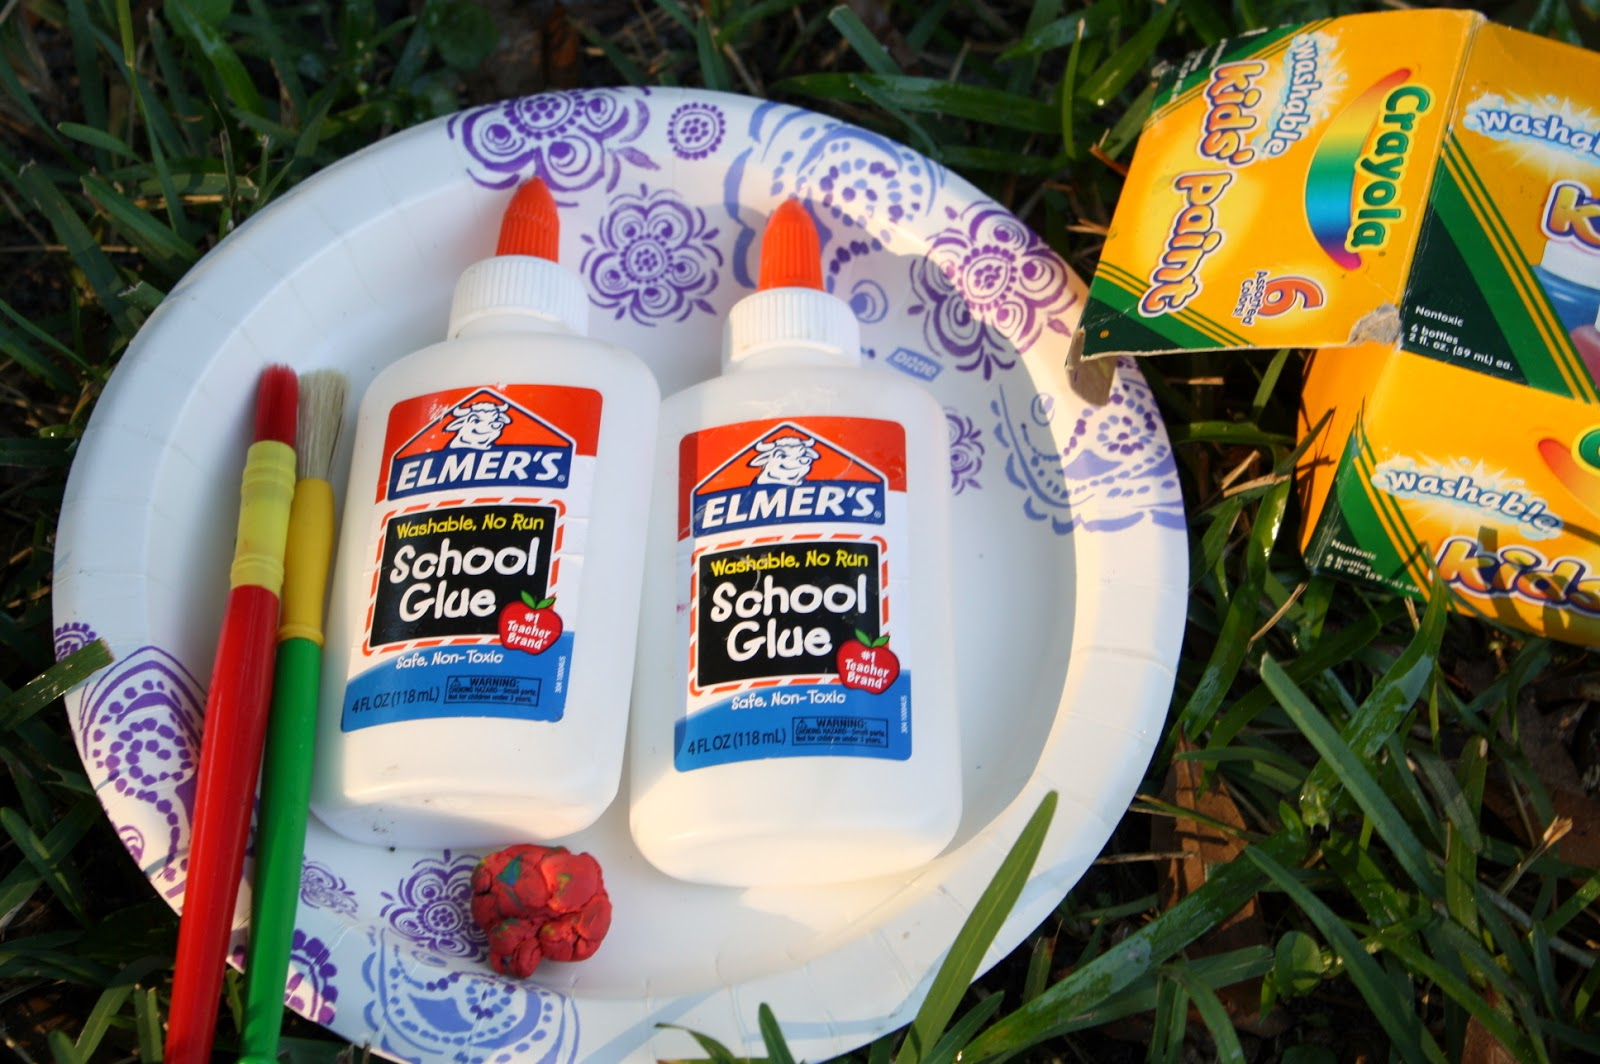 Materials Needed Air Dry Clay / Clay Crayons Watercolor Paint or Tempera Paint Nature Objects (twigs, leaves, or flowers) Paper Plate School Glue or Hot Glue (optional and adult use recommended)